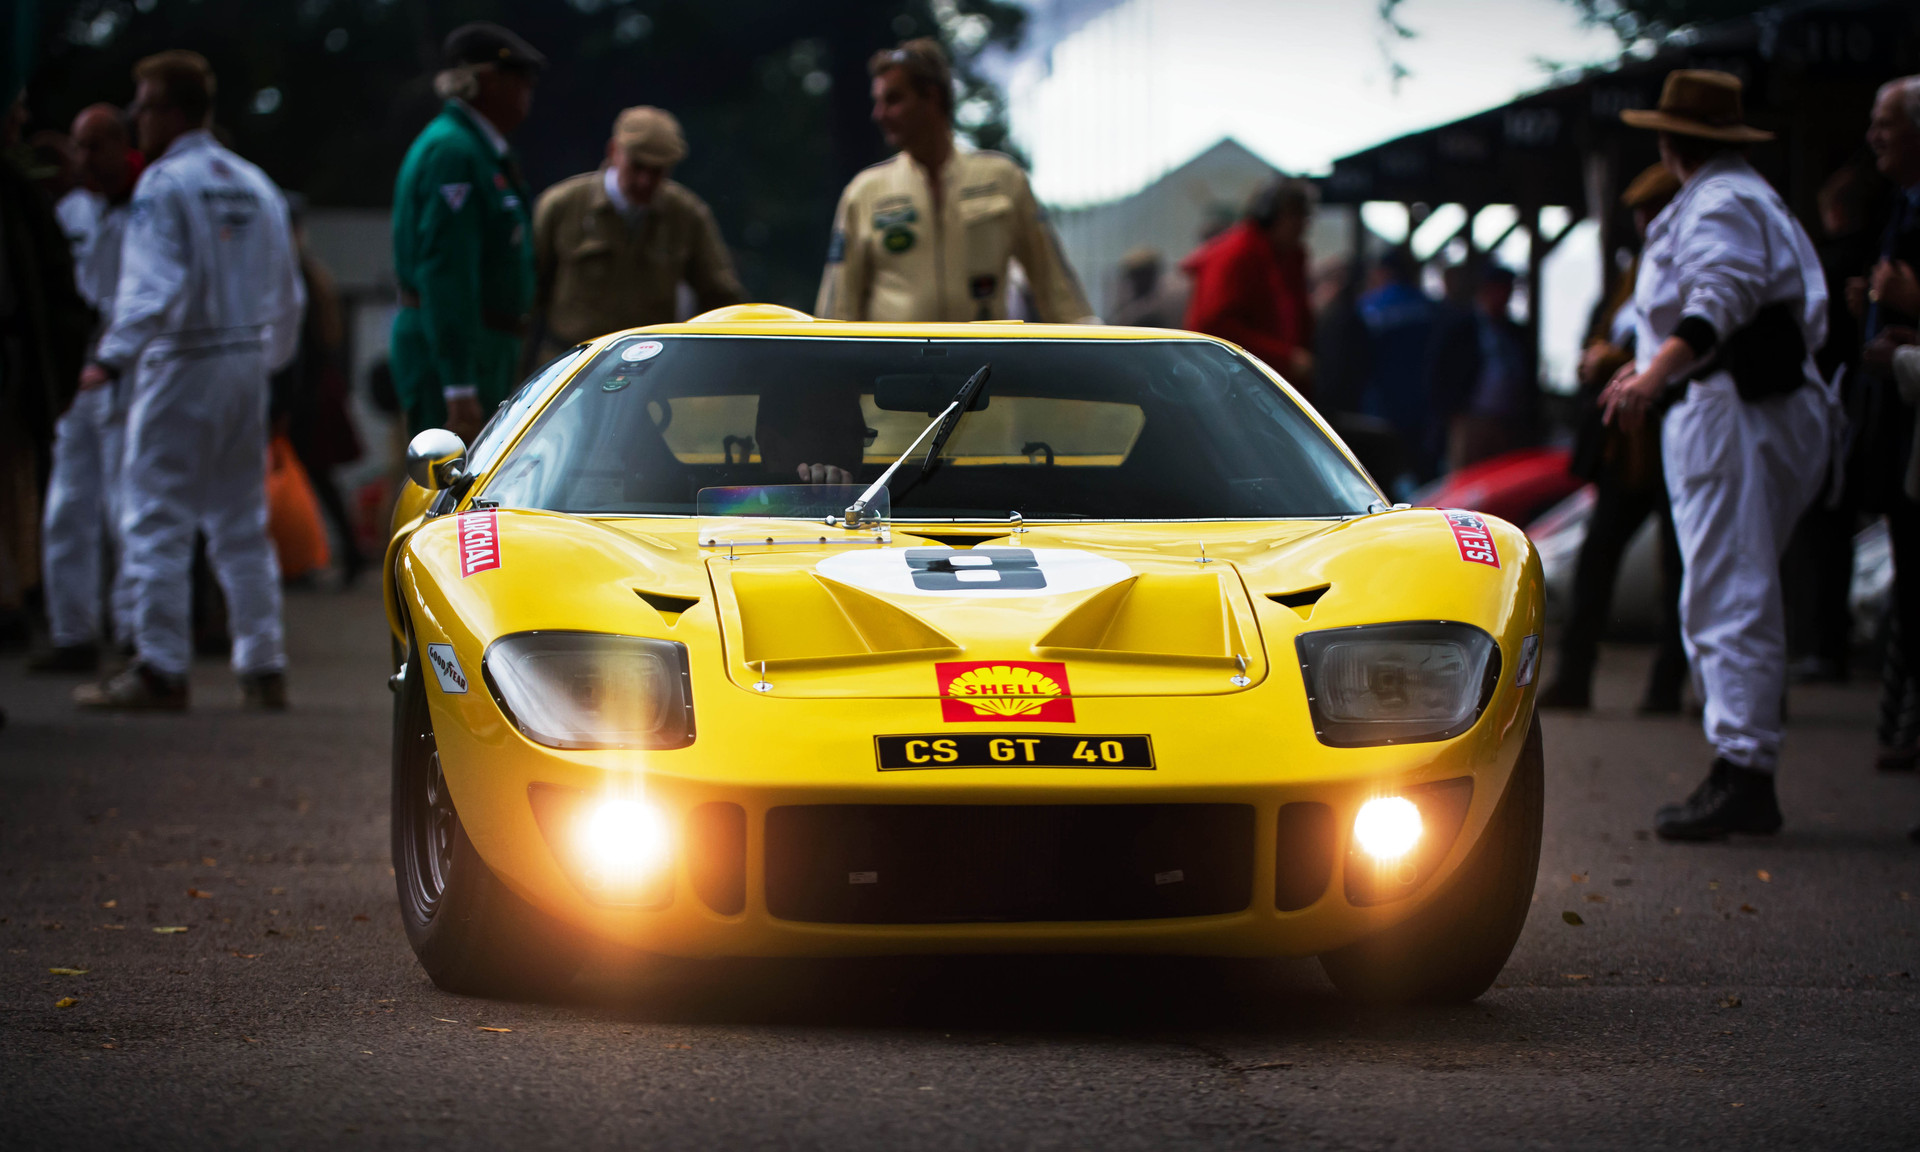 Christian Stahl & Nick Padmore's 1968 Ford GT40 at the 2017 Goodwood Revival